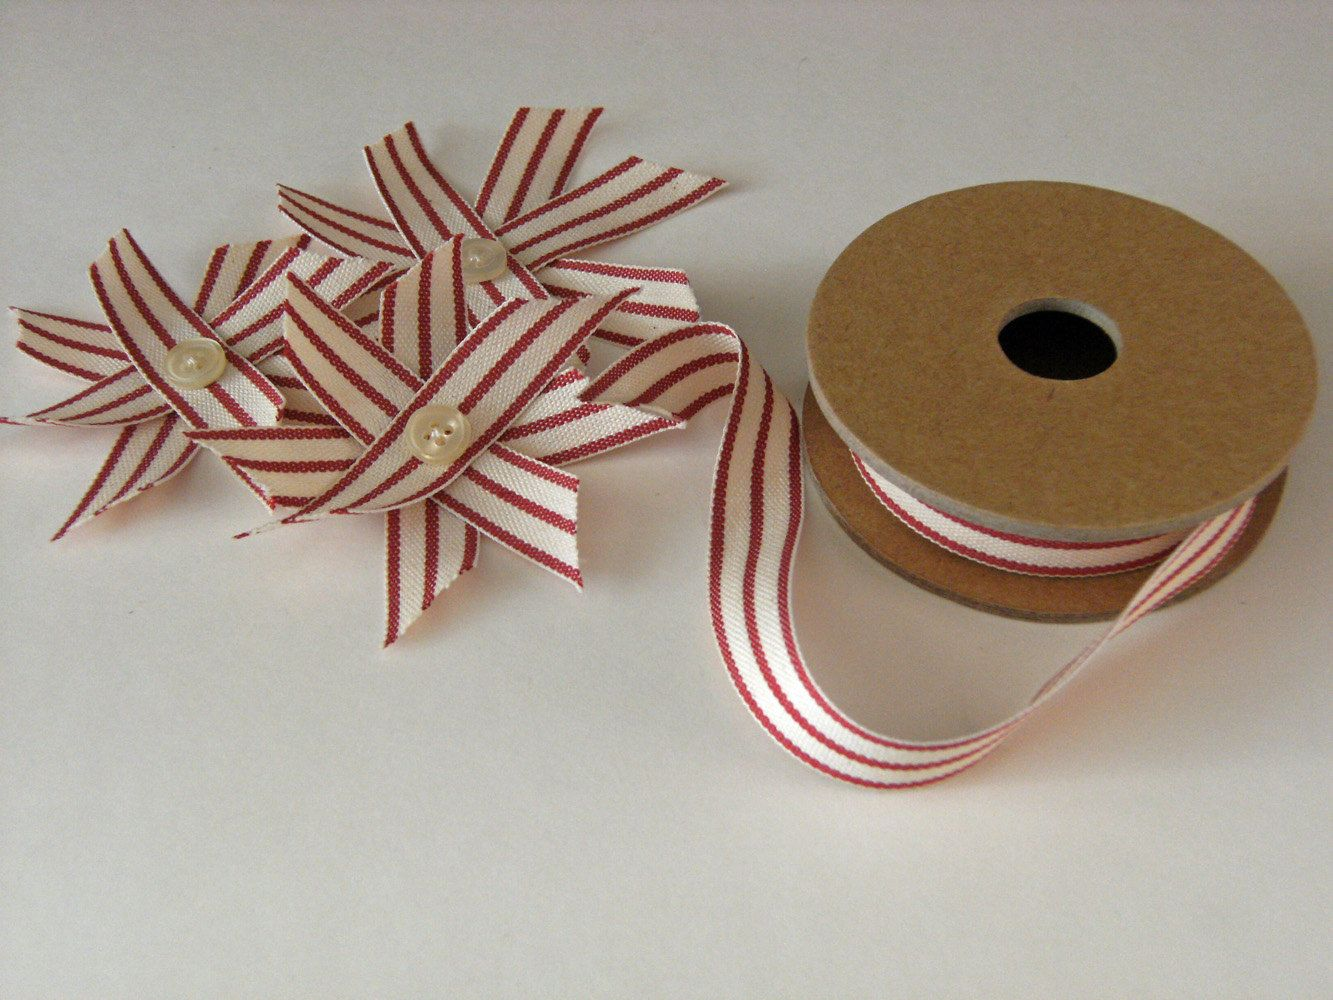 Xmas DIY vintage red flowers stars l decor gift wrap or paper